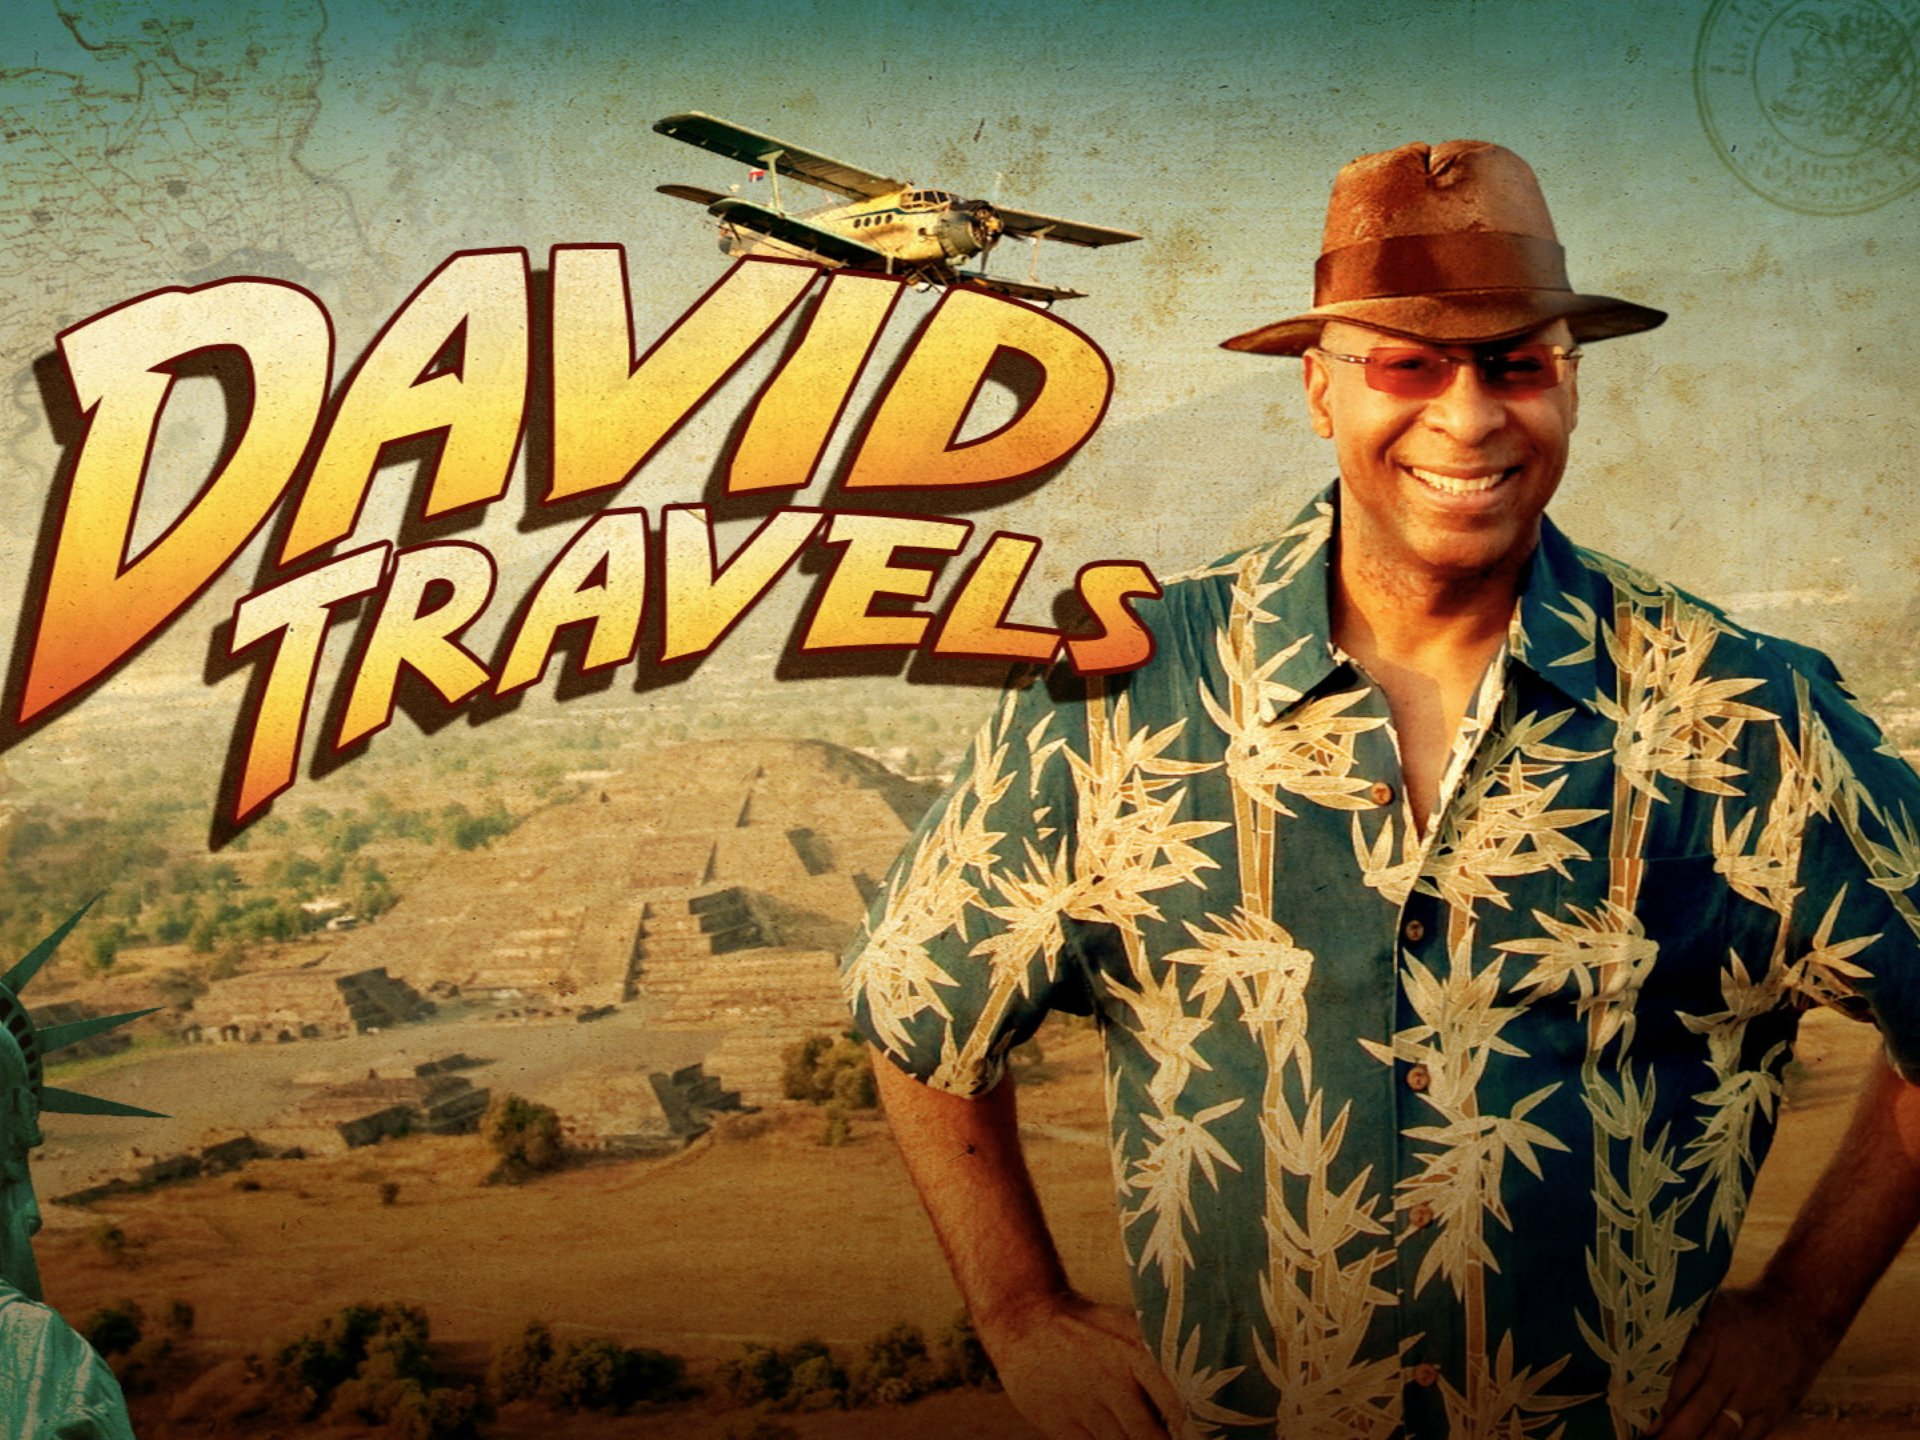 David Travels - Season 1